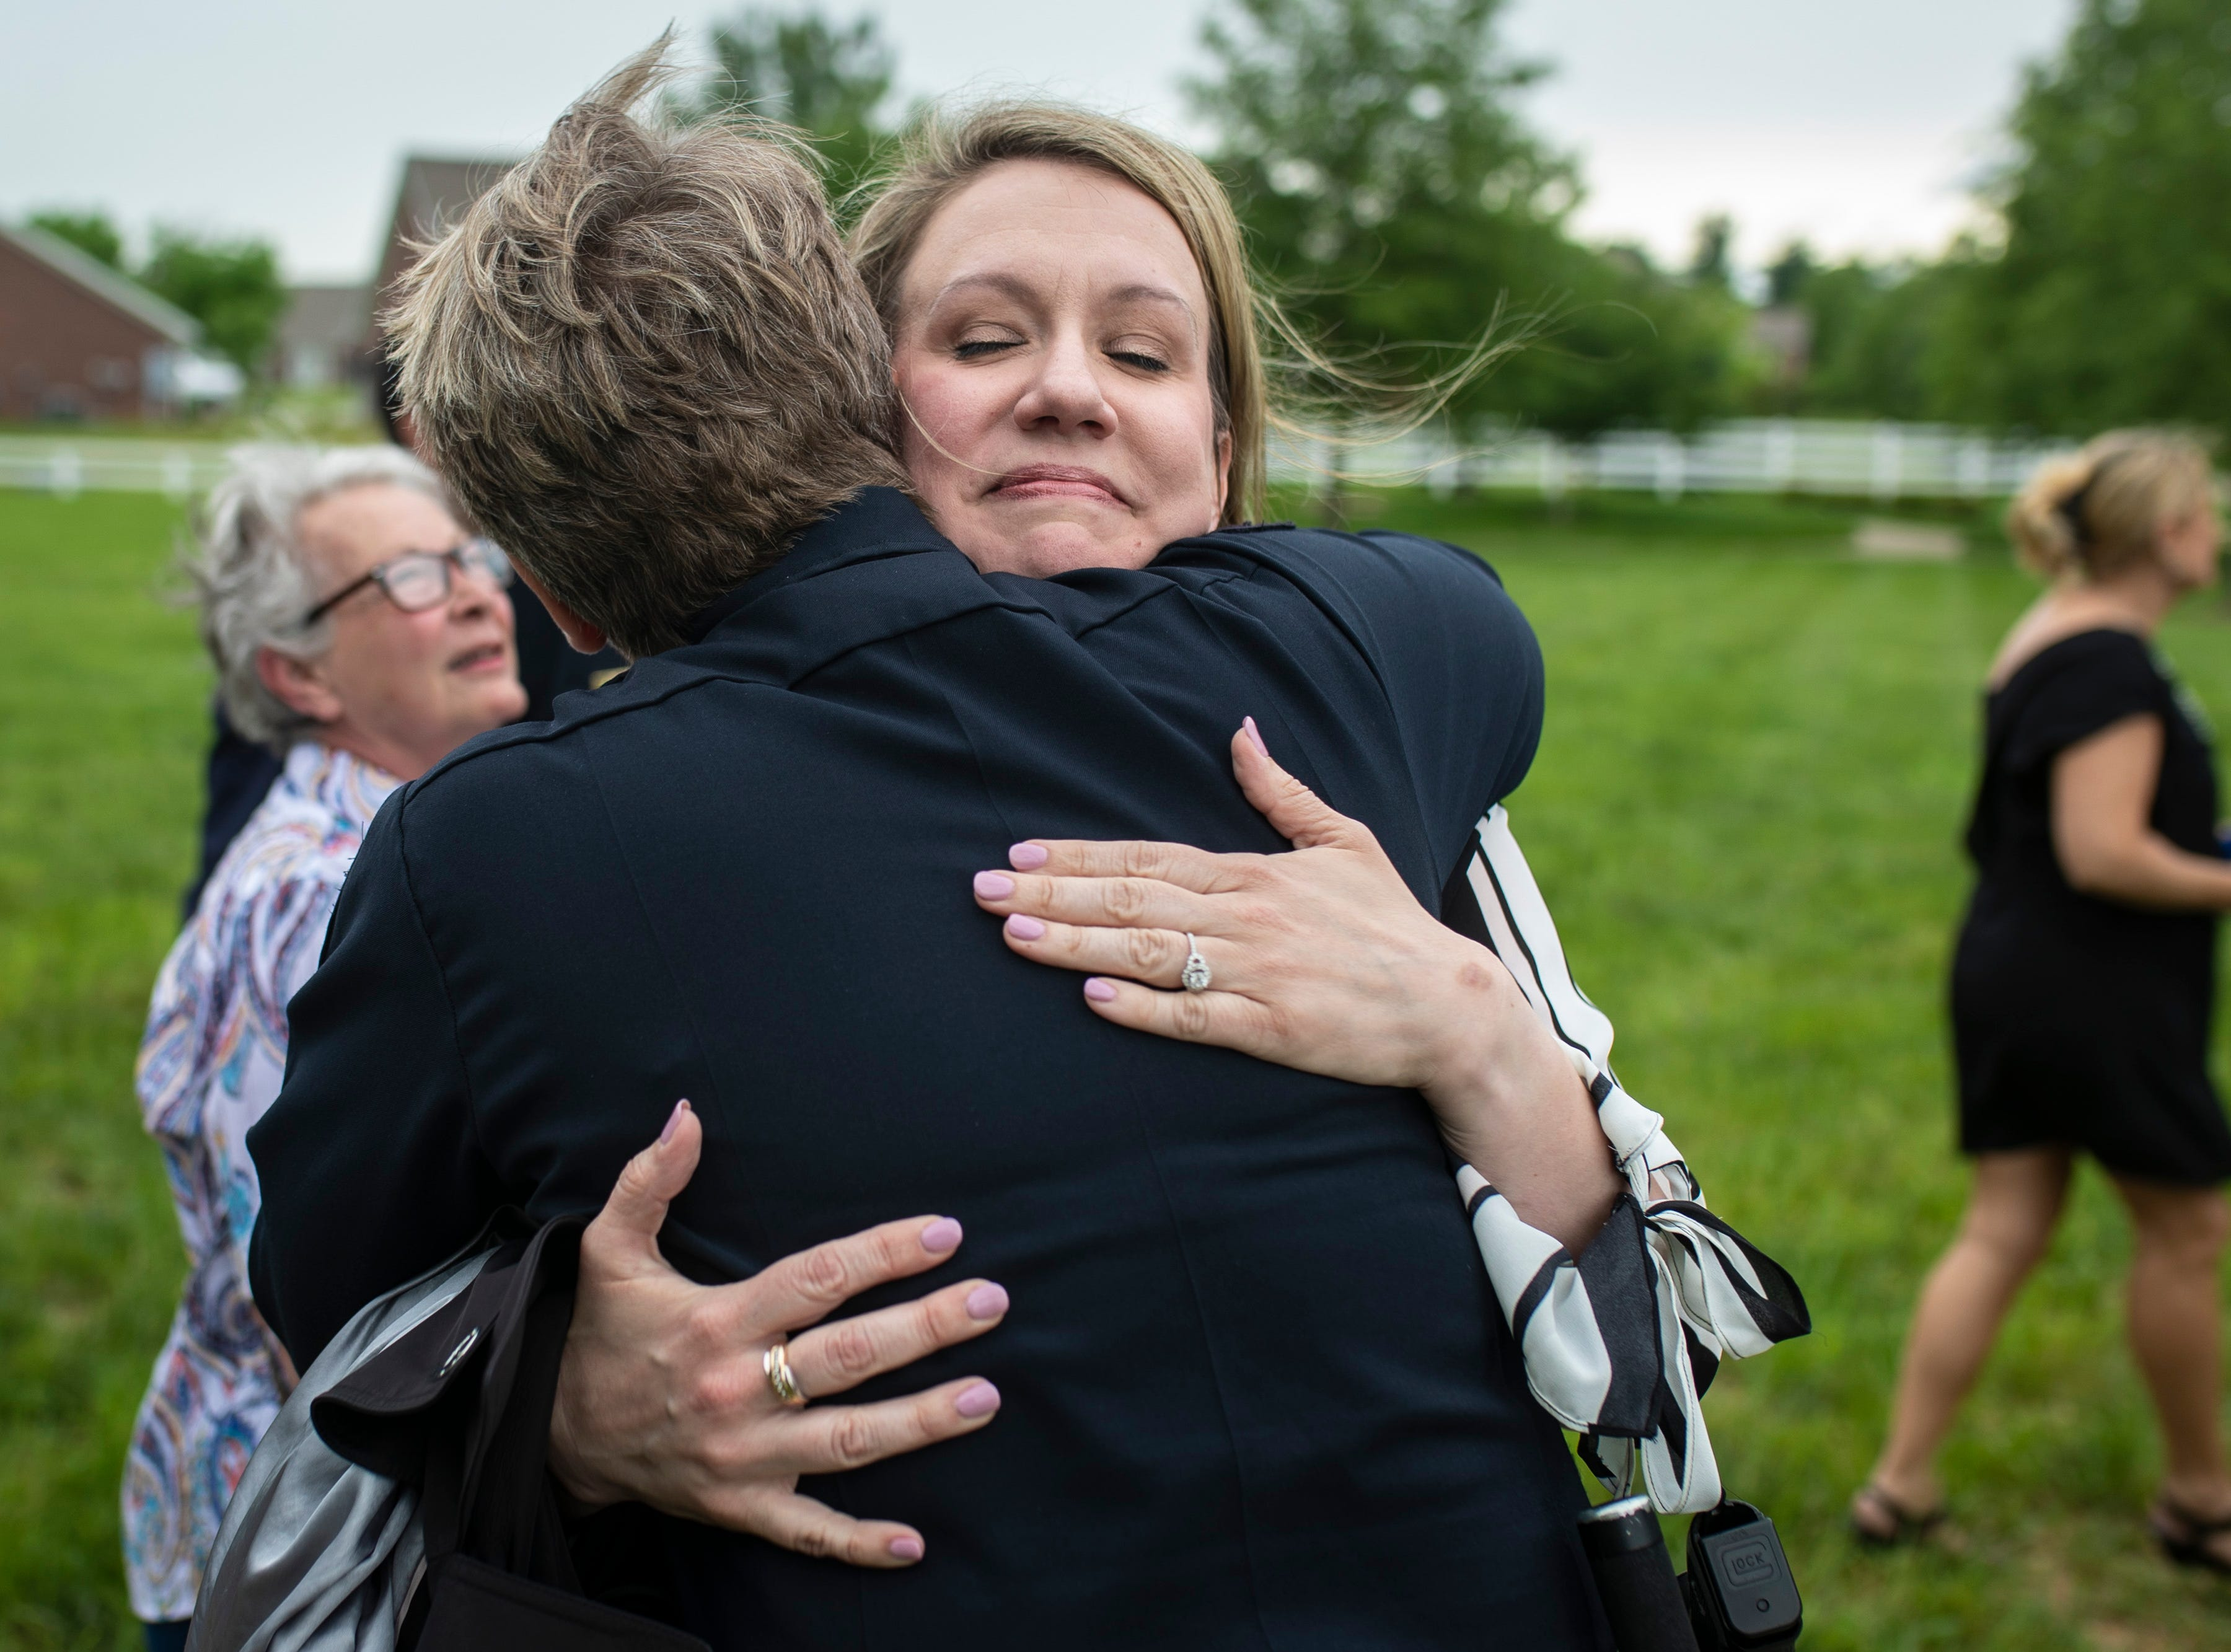 Rebecca Grignon, right, receives a hug from Assistant Chief of Police Shara Parks following the renaming of the corner of Stony Brook Drive and Six Mile Lane in Jeffersontown to Peter Grignon Way, in honor of Rebeccas's late husband and fallen officer shot during a hit and run stop in 2005. May 9, 2019